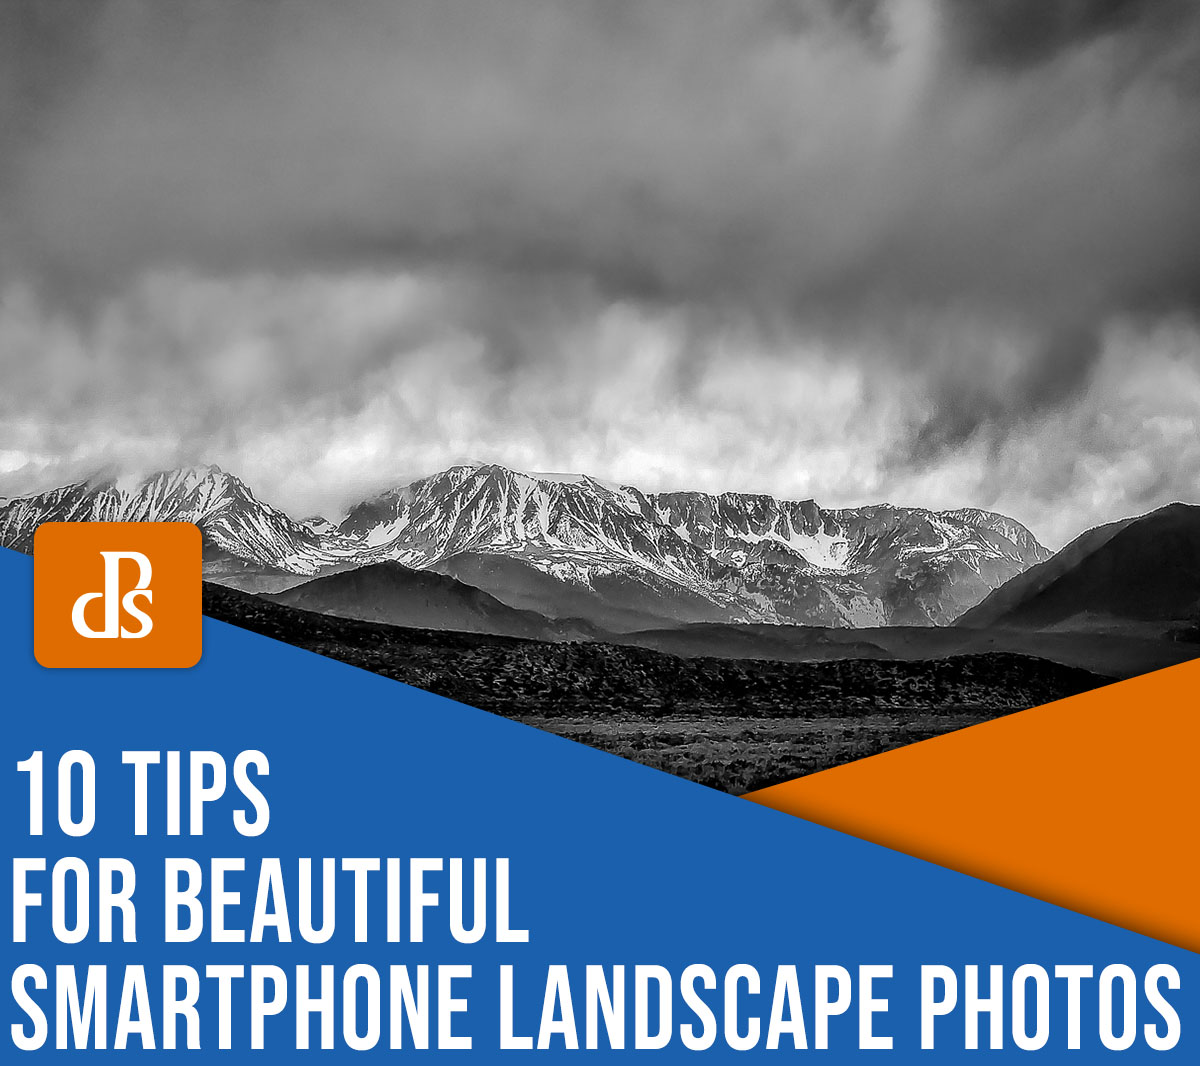 10 tips for beautiful smartphone landscape photos